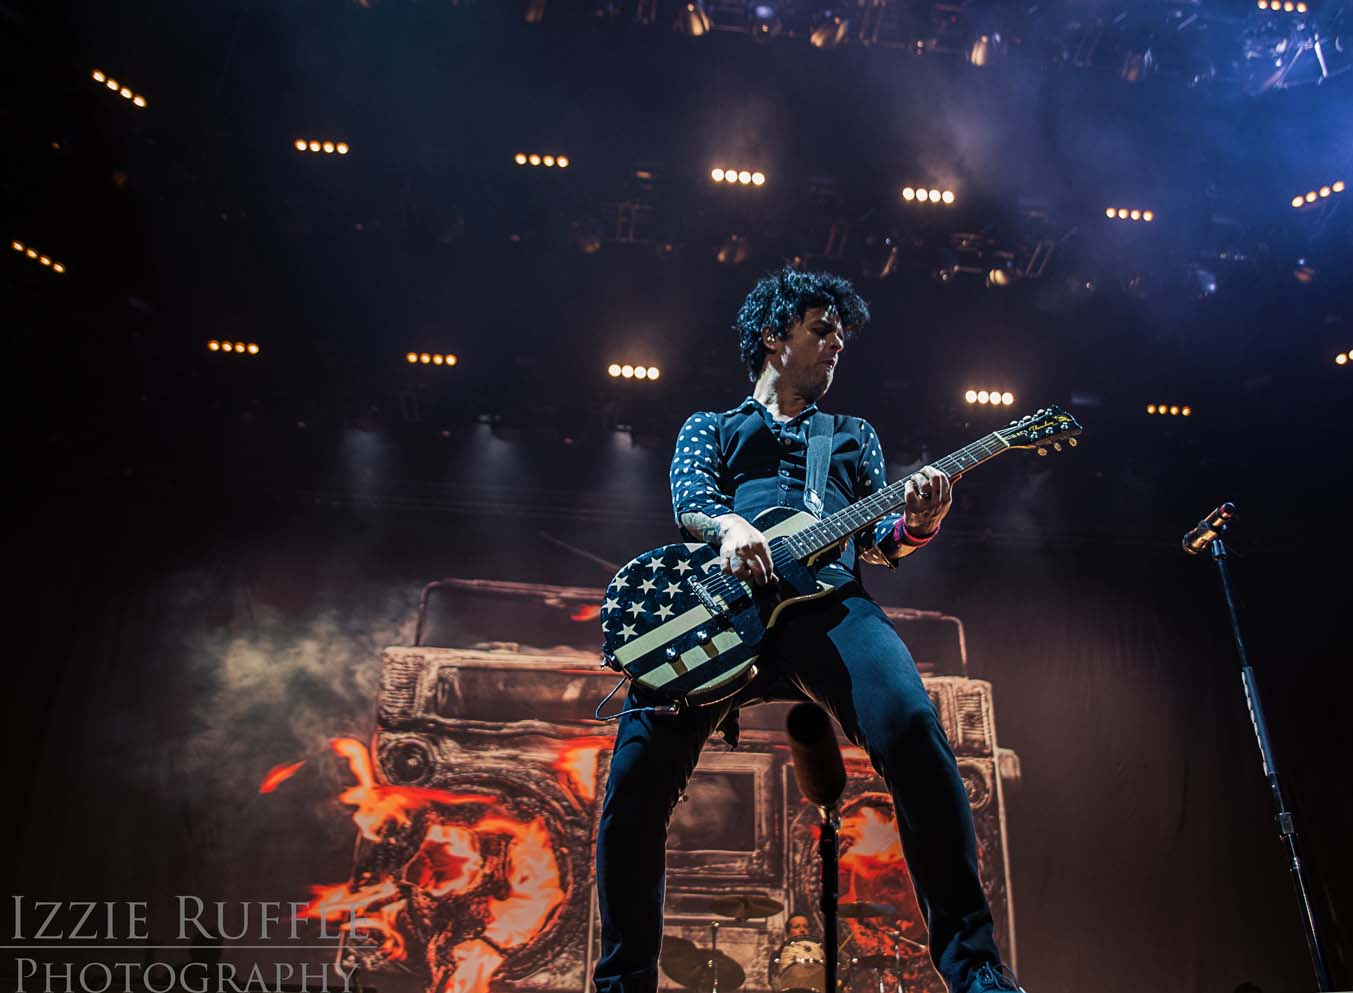 Green Day at the O2 Arena, photo: Izzie Ruffle